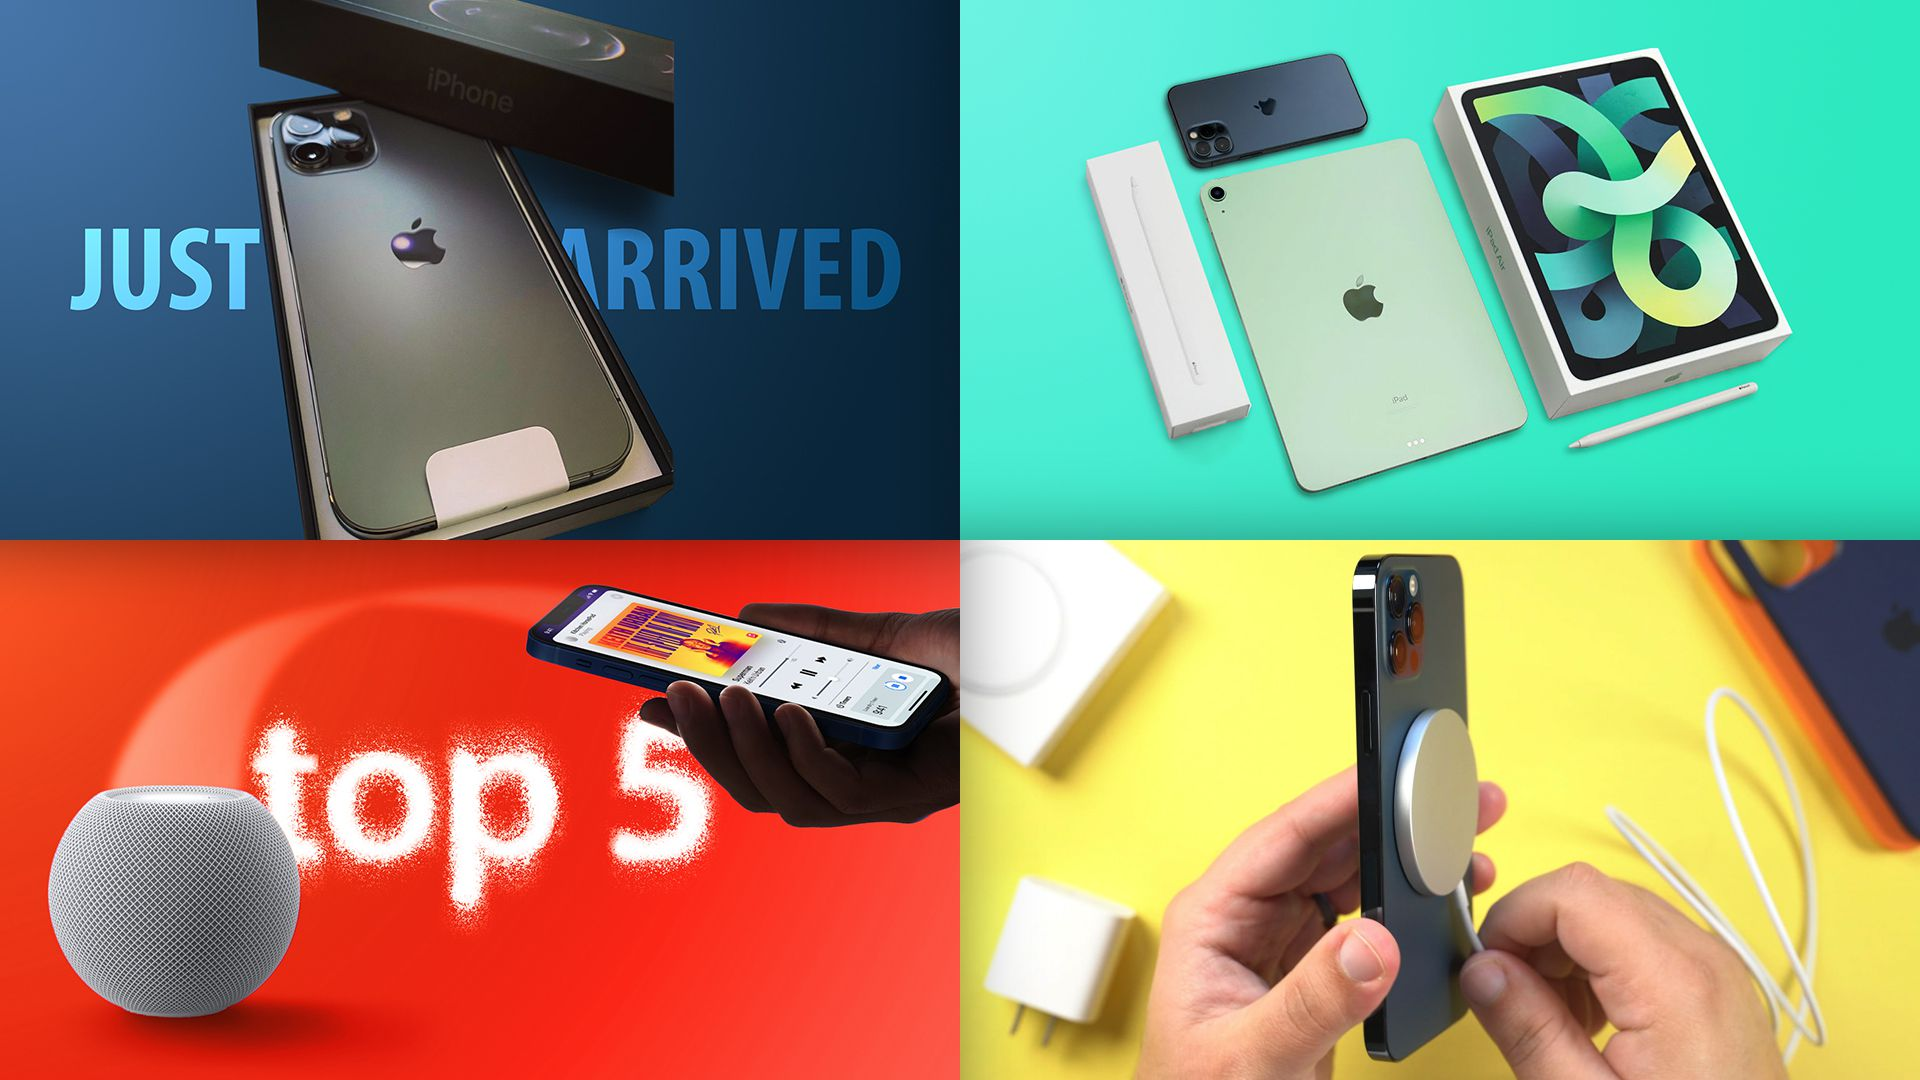 photo of Top Stories: iPhone 12, iPhone 12 Pro, MagSafe Charger, and New iPad Air Launch image